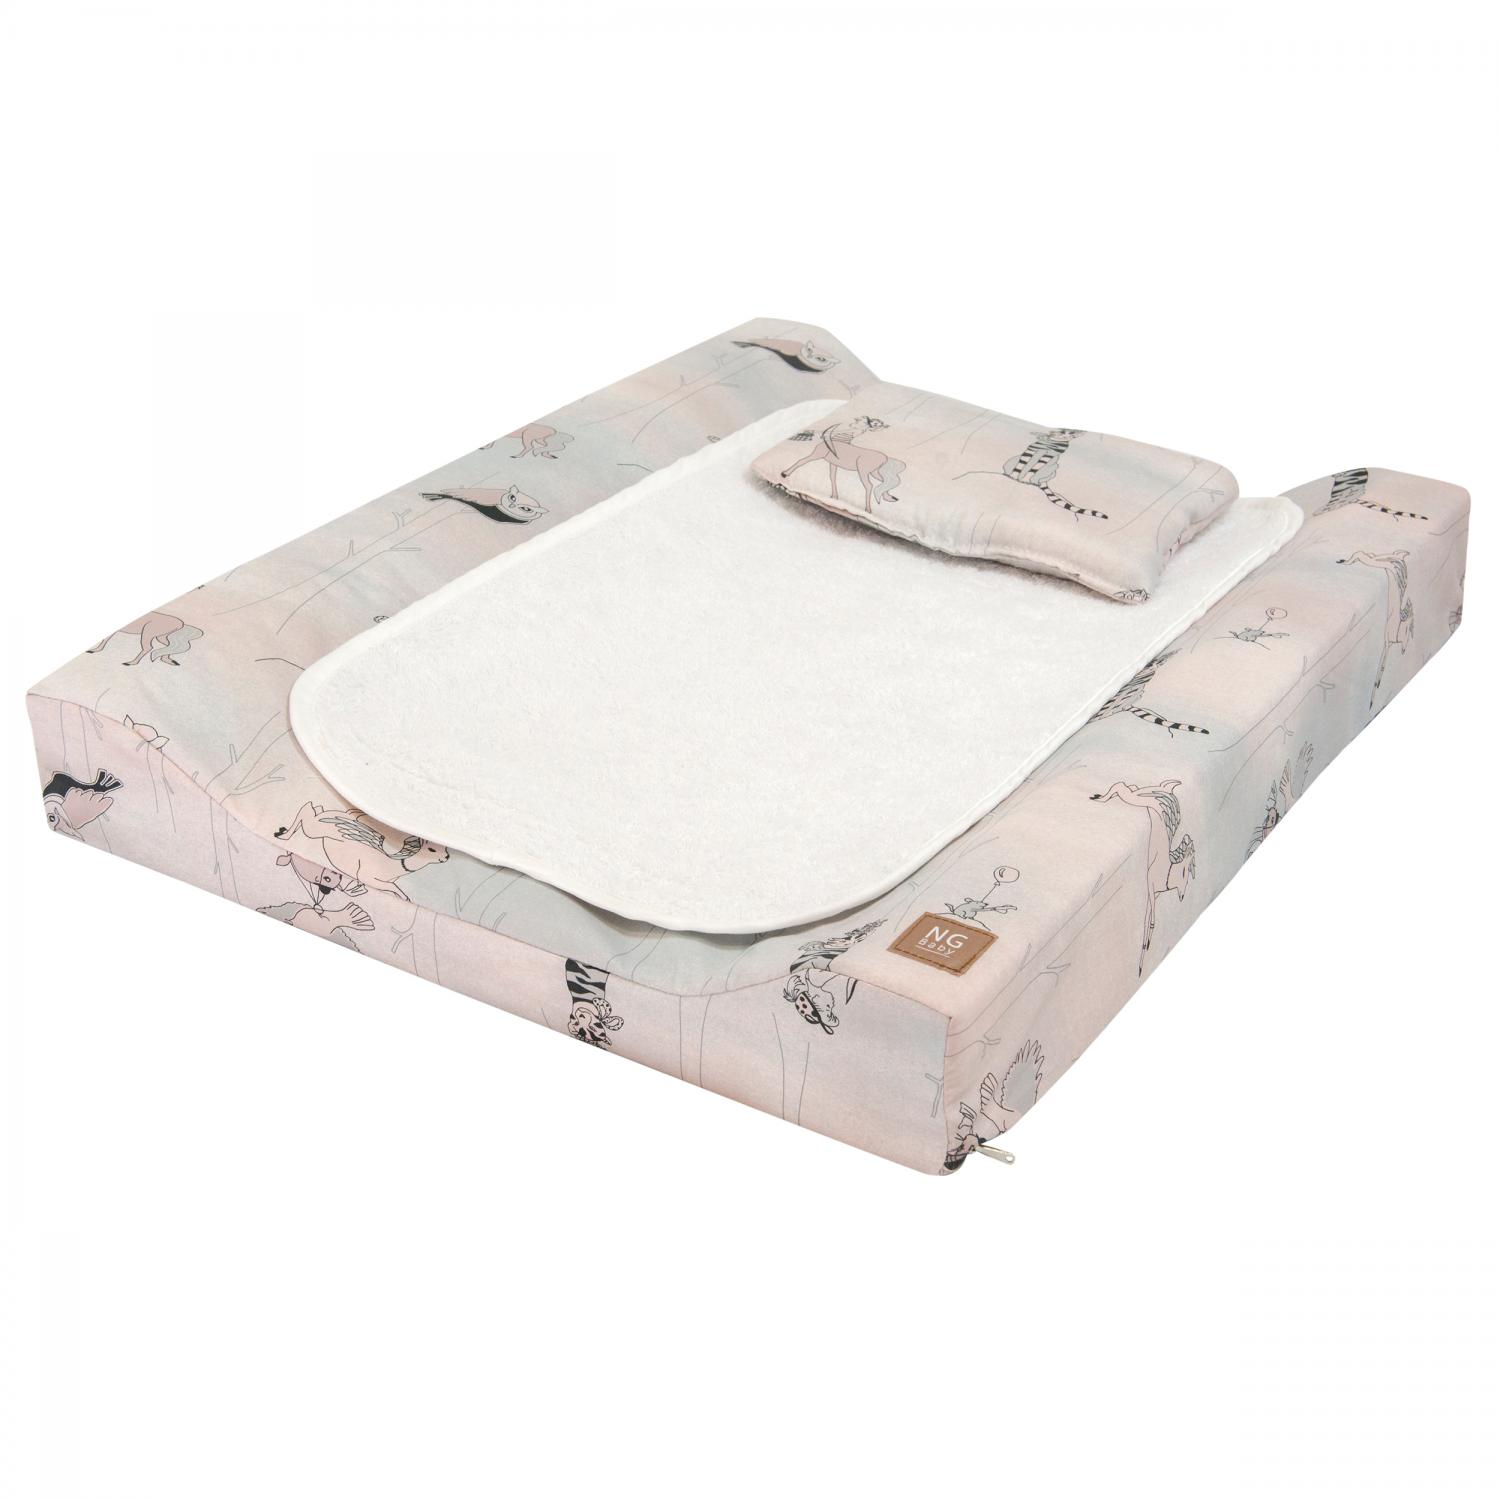 Changing pad de lux | Woods rose | Woods & Fairytales